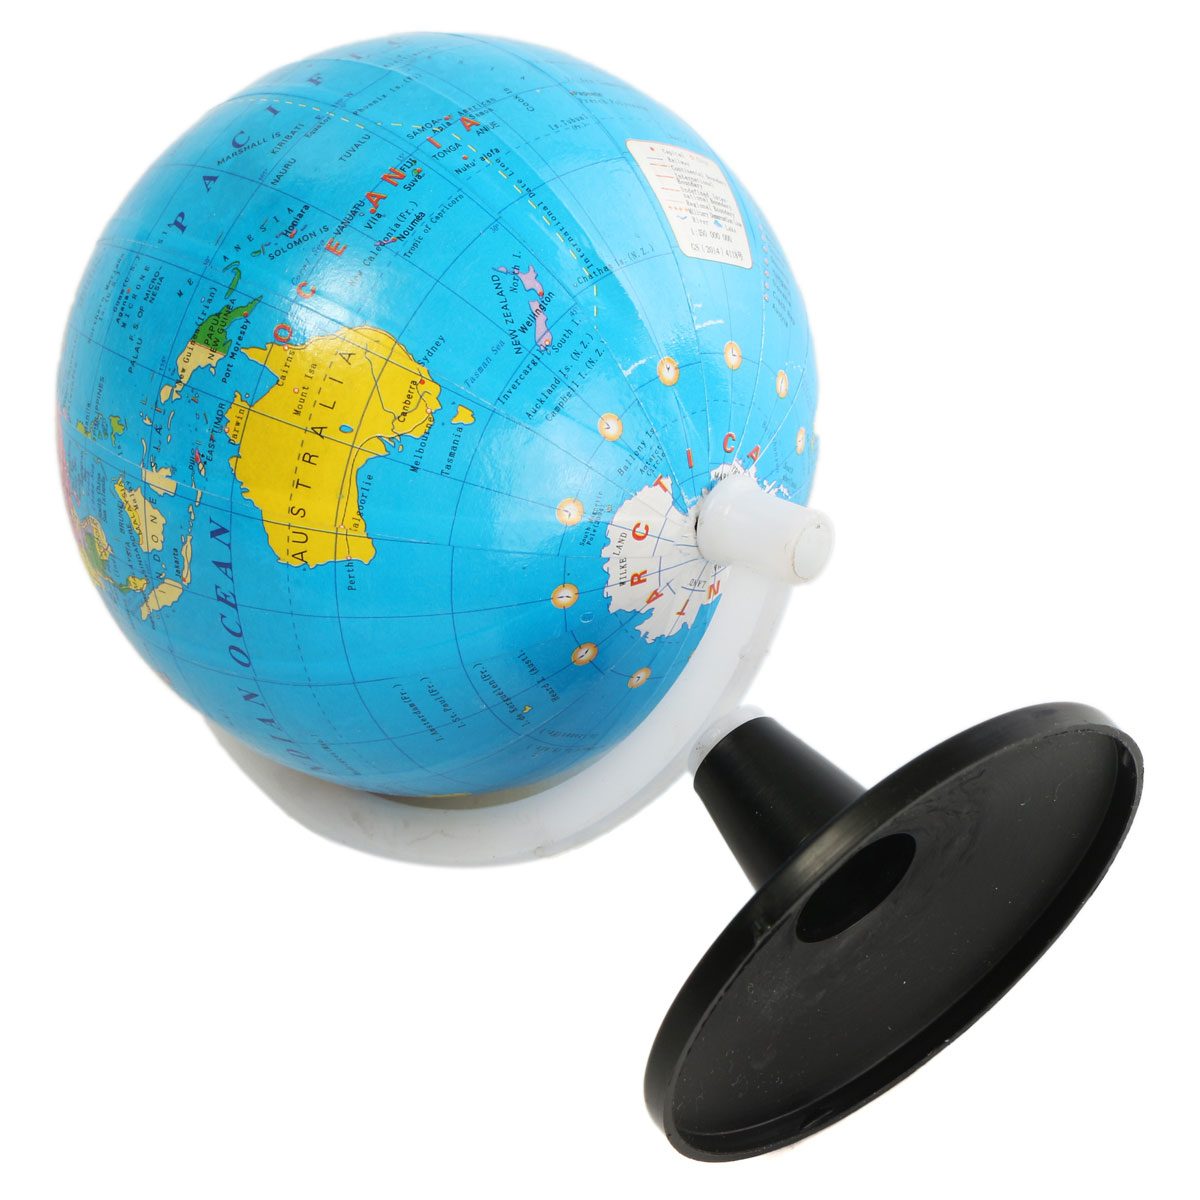 85cm world globe atlas map with swivel stand geography c1a95bb8 493f afdc 2176 cec654c447b4g gumiabroncs Image collections